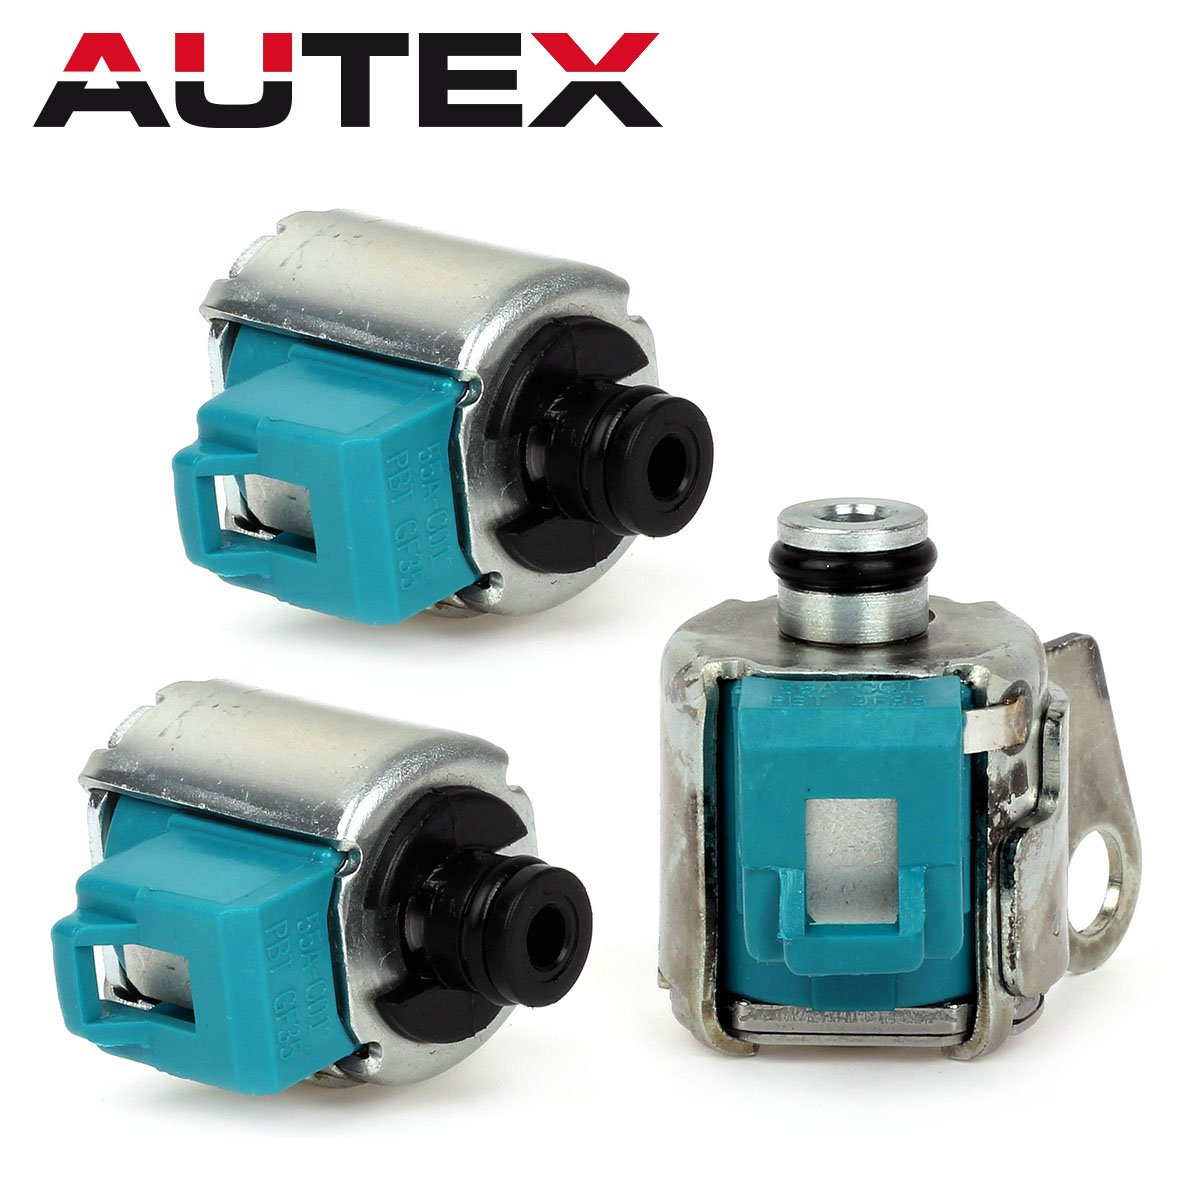 AUTEX A340E A340F AW4 Shift TCC Lock Up Soleniod Set Fits For 1987 1988 1989 1990 Jeep Cherokee, Wagoneer. 1990 1991 Jeep Comanche. 1989 1990 1991 1992-1999 Toyota 4Runner Cressida Pickup T100 Tacoma